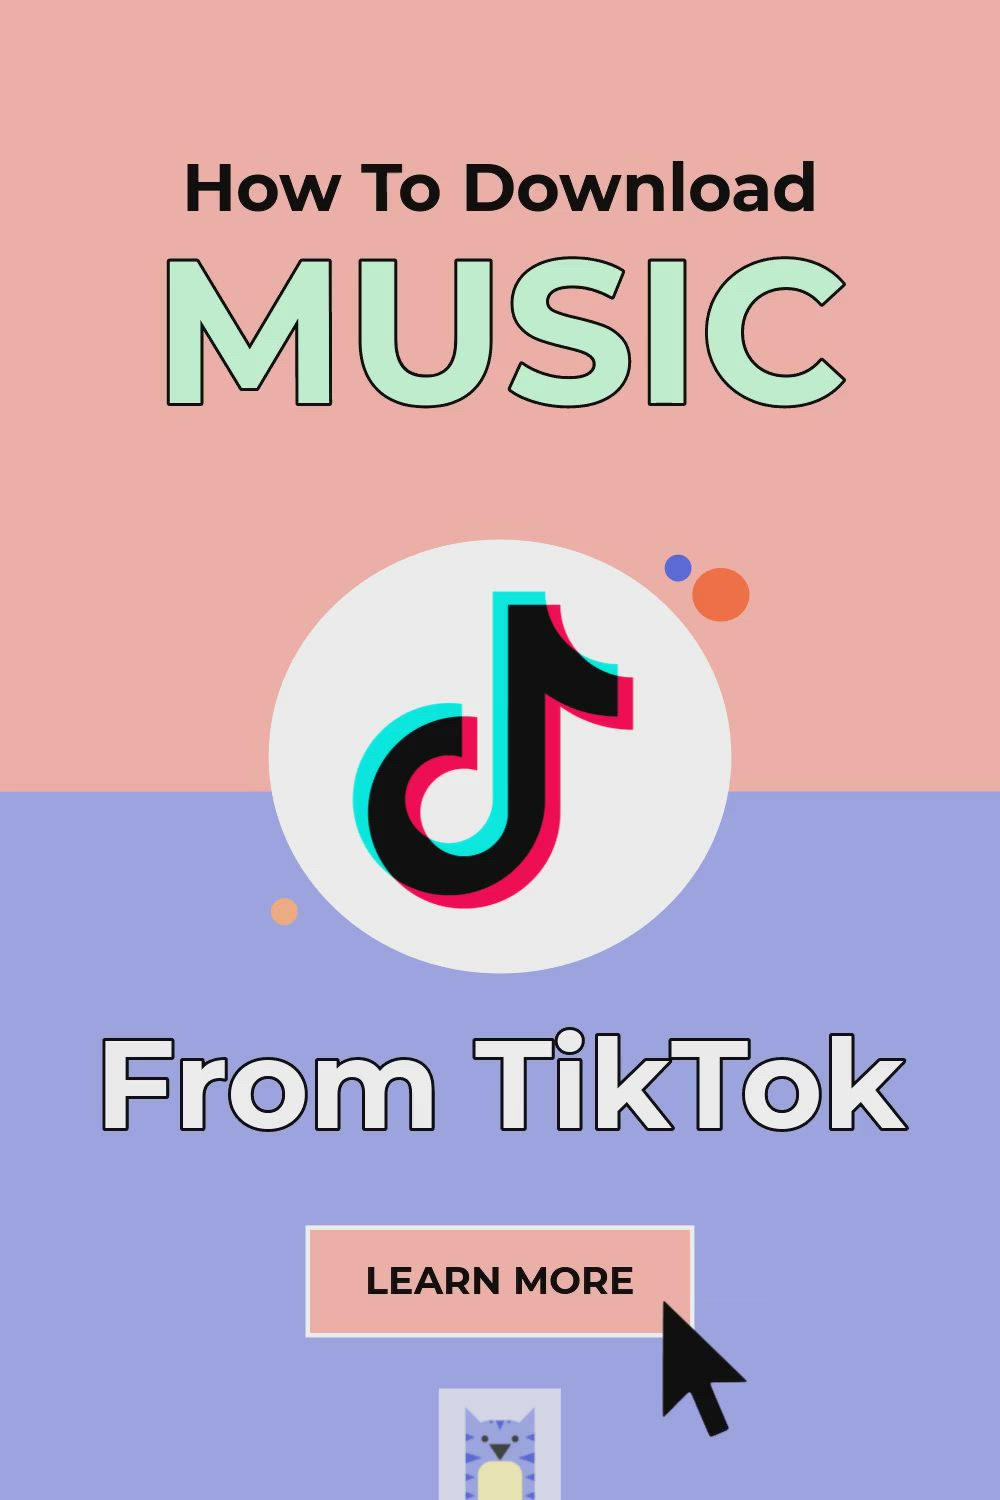 How To Download Music From Tiktok Video Music Playlist Music Download Music